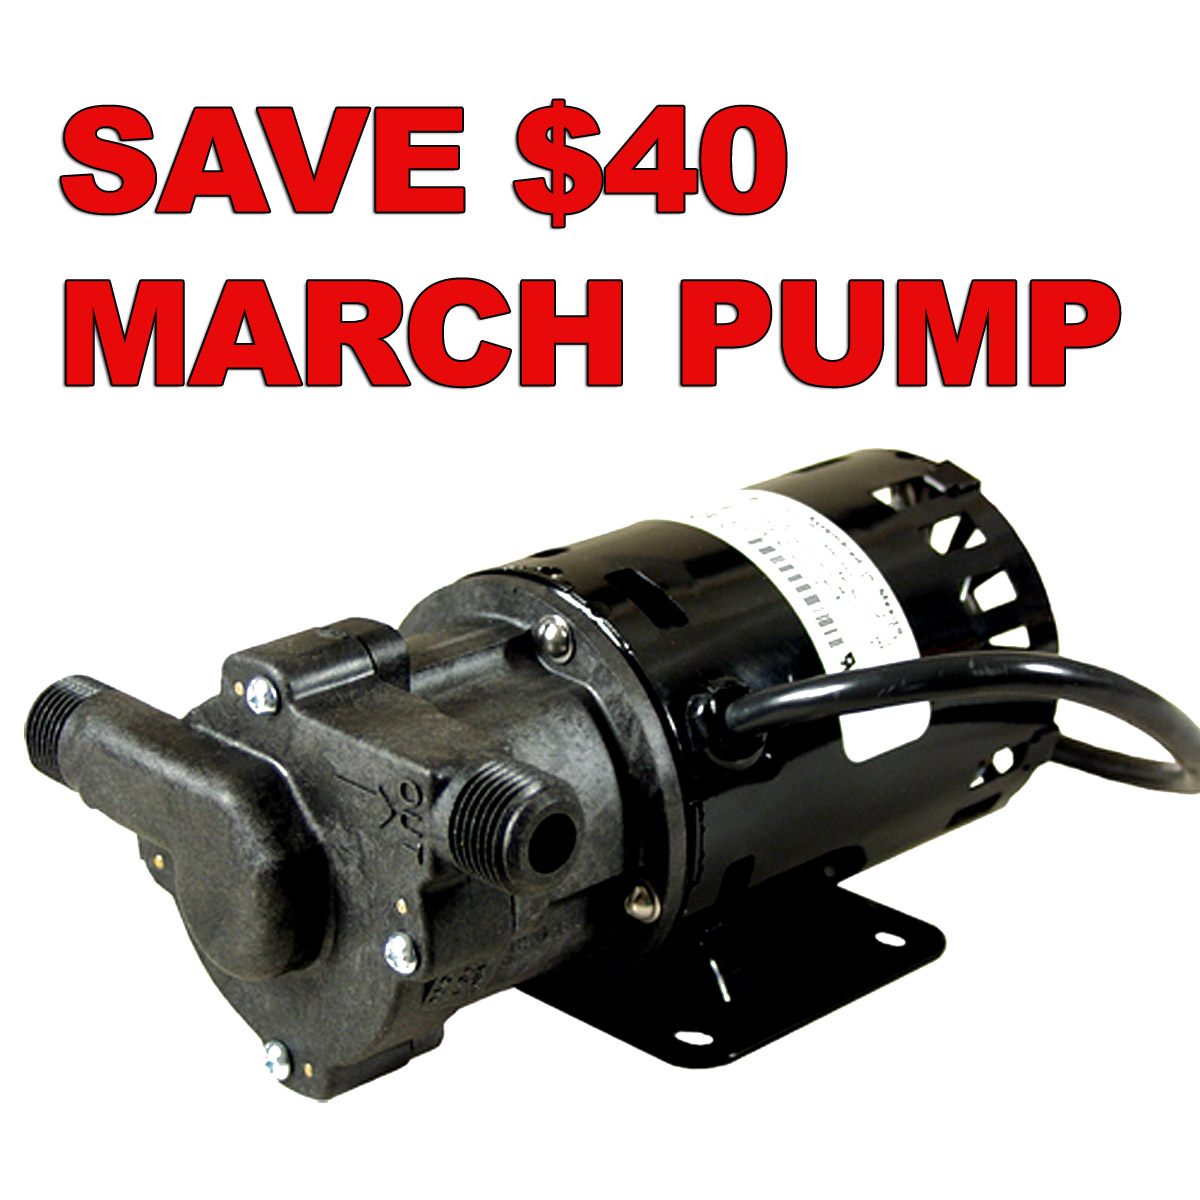 Home Wine Making Coupon Codes for Save $40 On A  March Wine Pump With Coupon Code Coupon Code